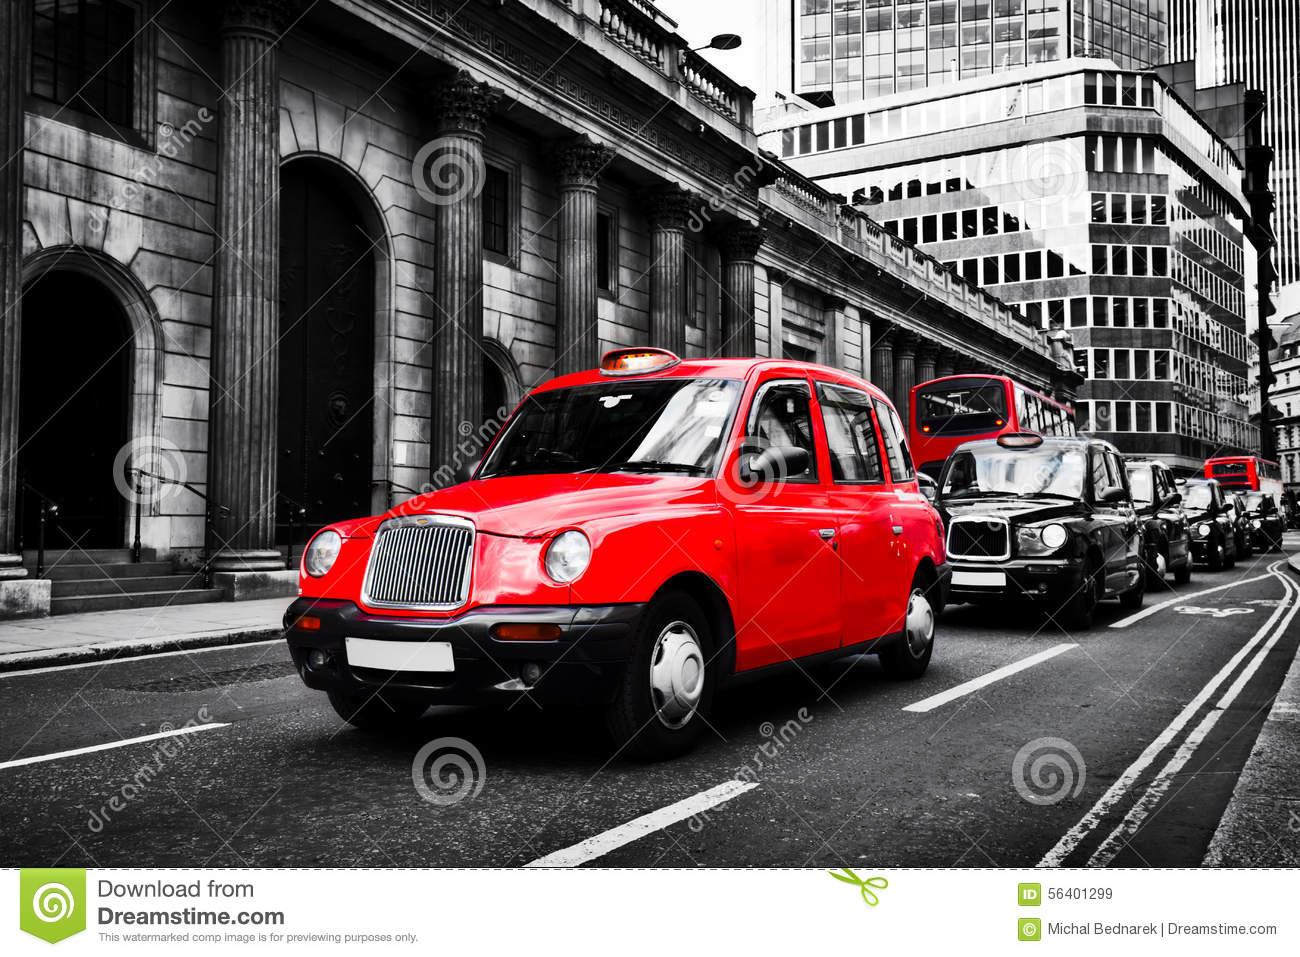 symbole de londres r u taxi connu sous le nom de chariot de hackney image stock image 56401299. Black Bedroom Furniture Sets. Home Design Ideas